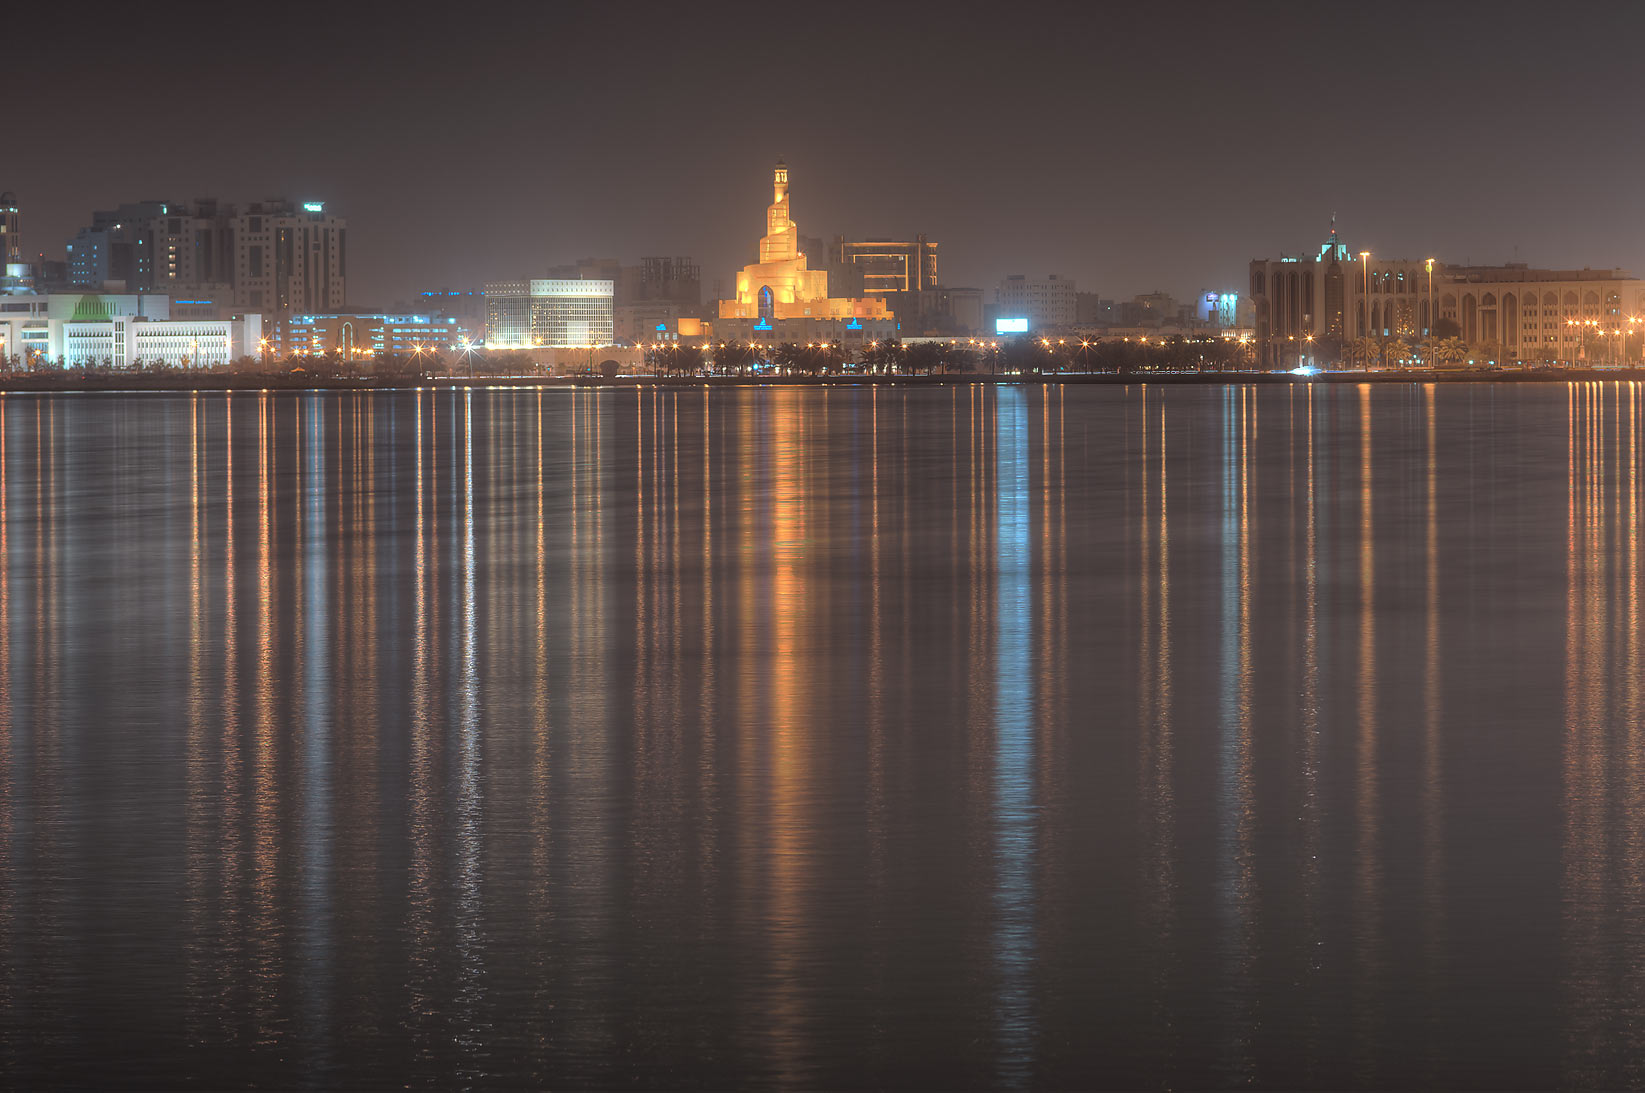 Spiral mosque across the gulf, view from Corniche. Doha, Qatar